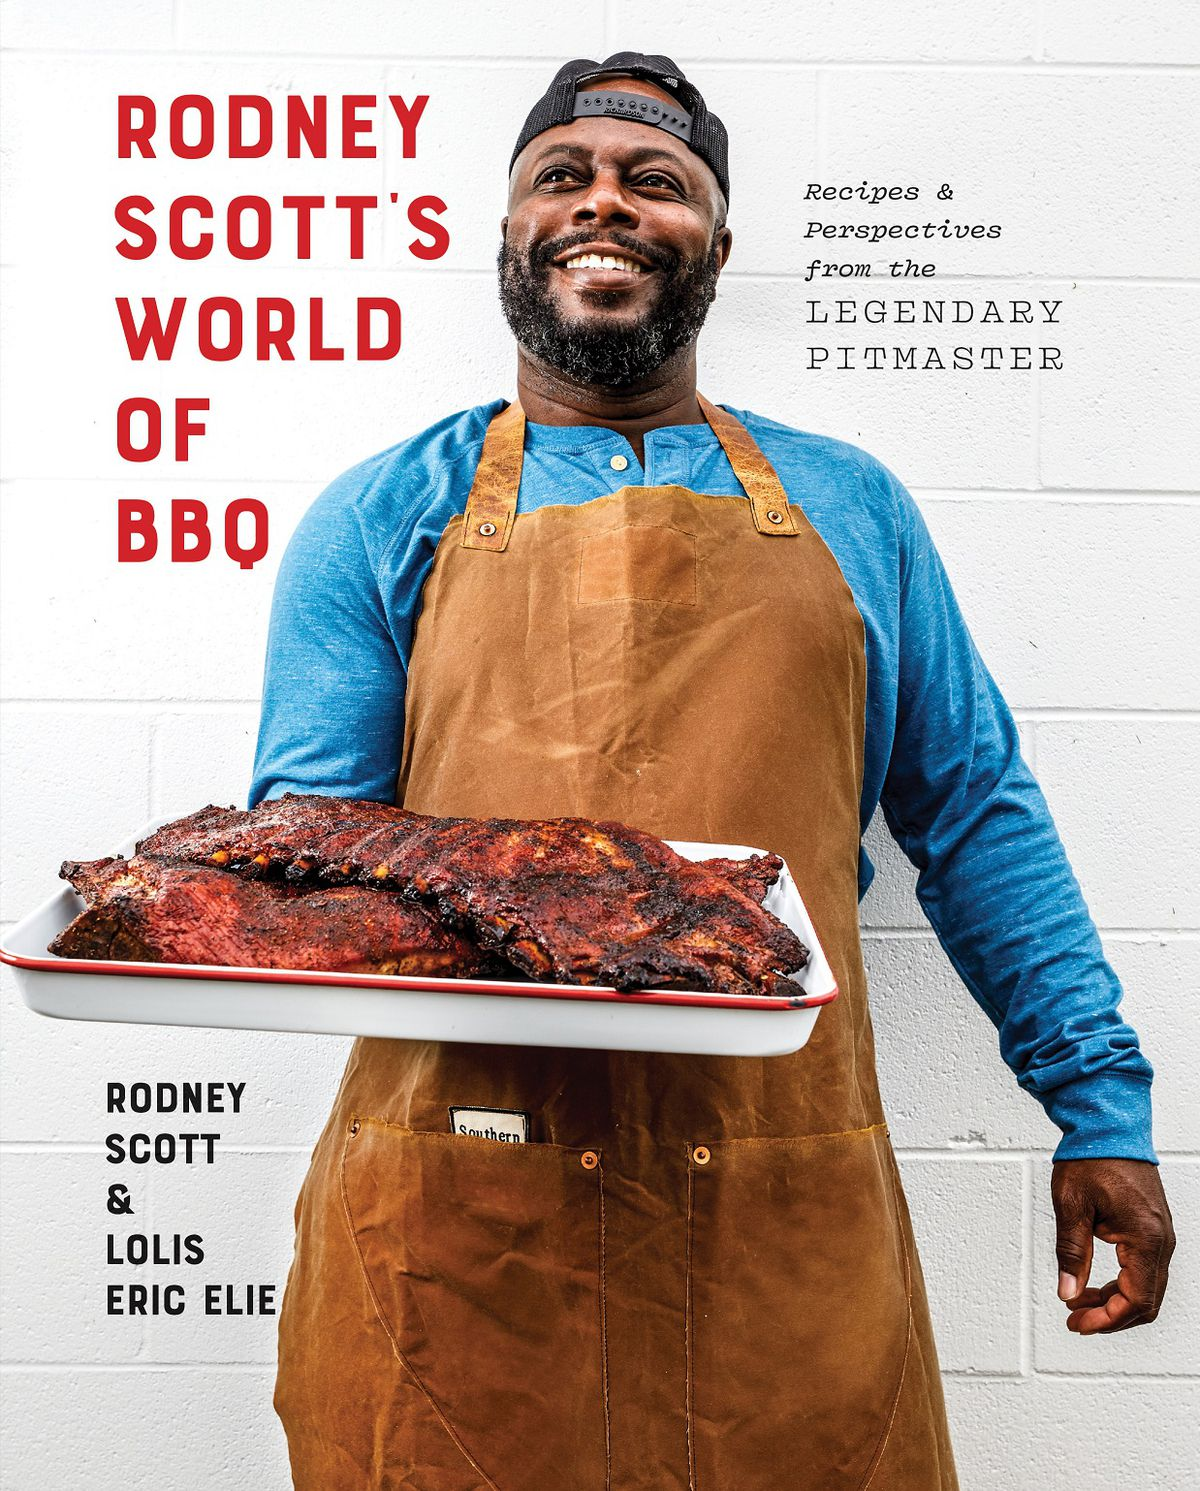 A book cover with a man holding out a tray of barbecue